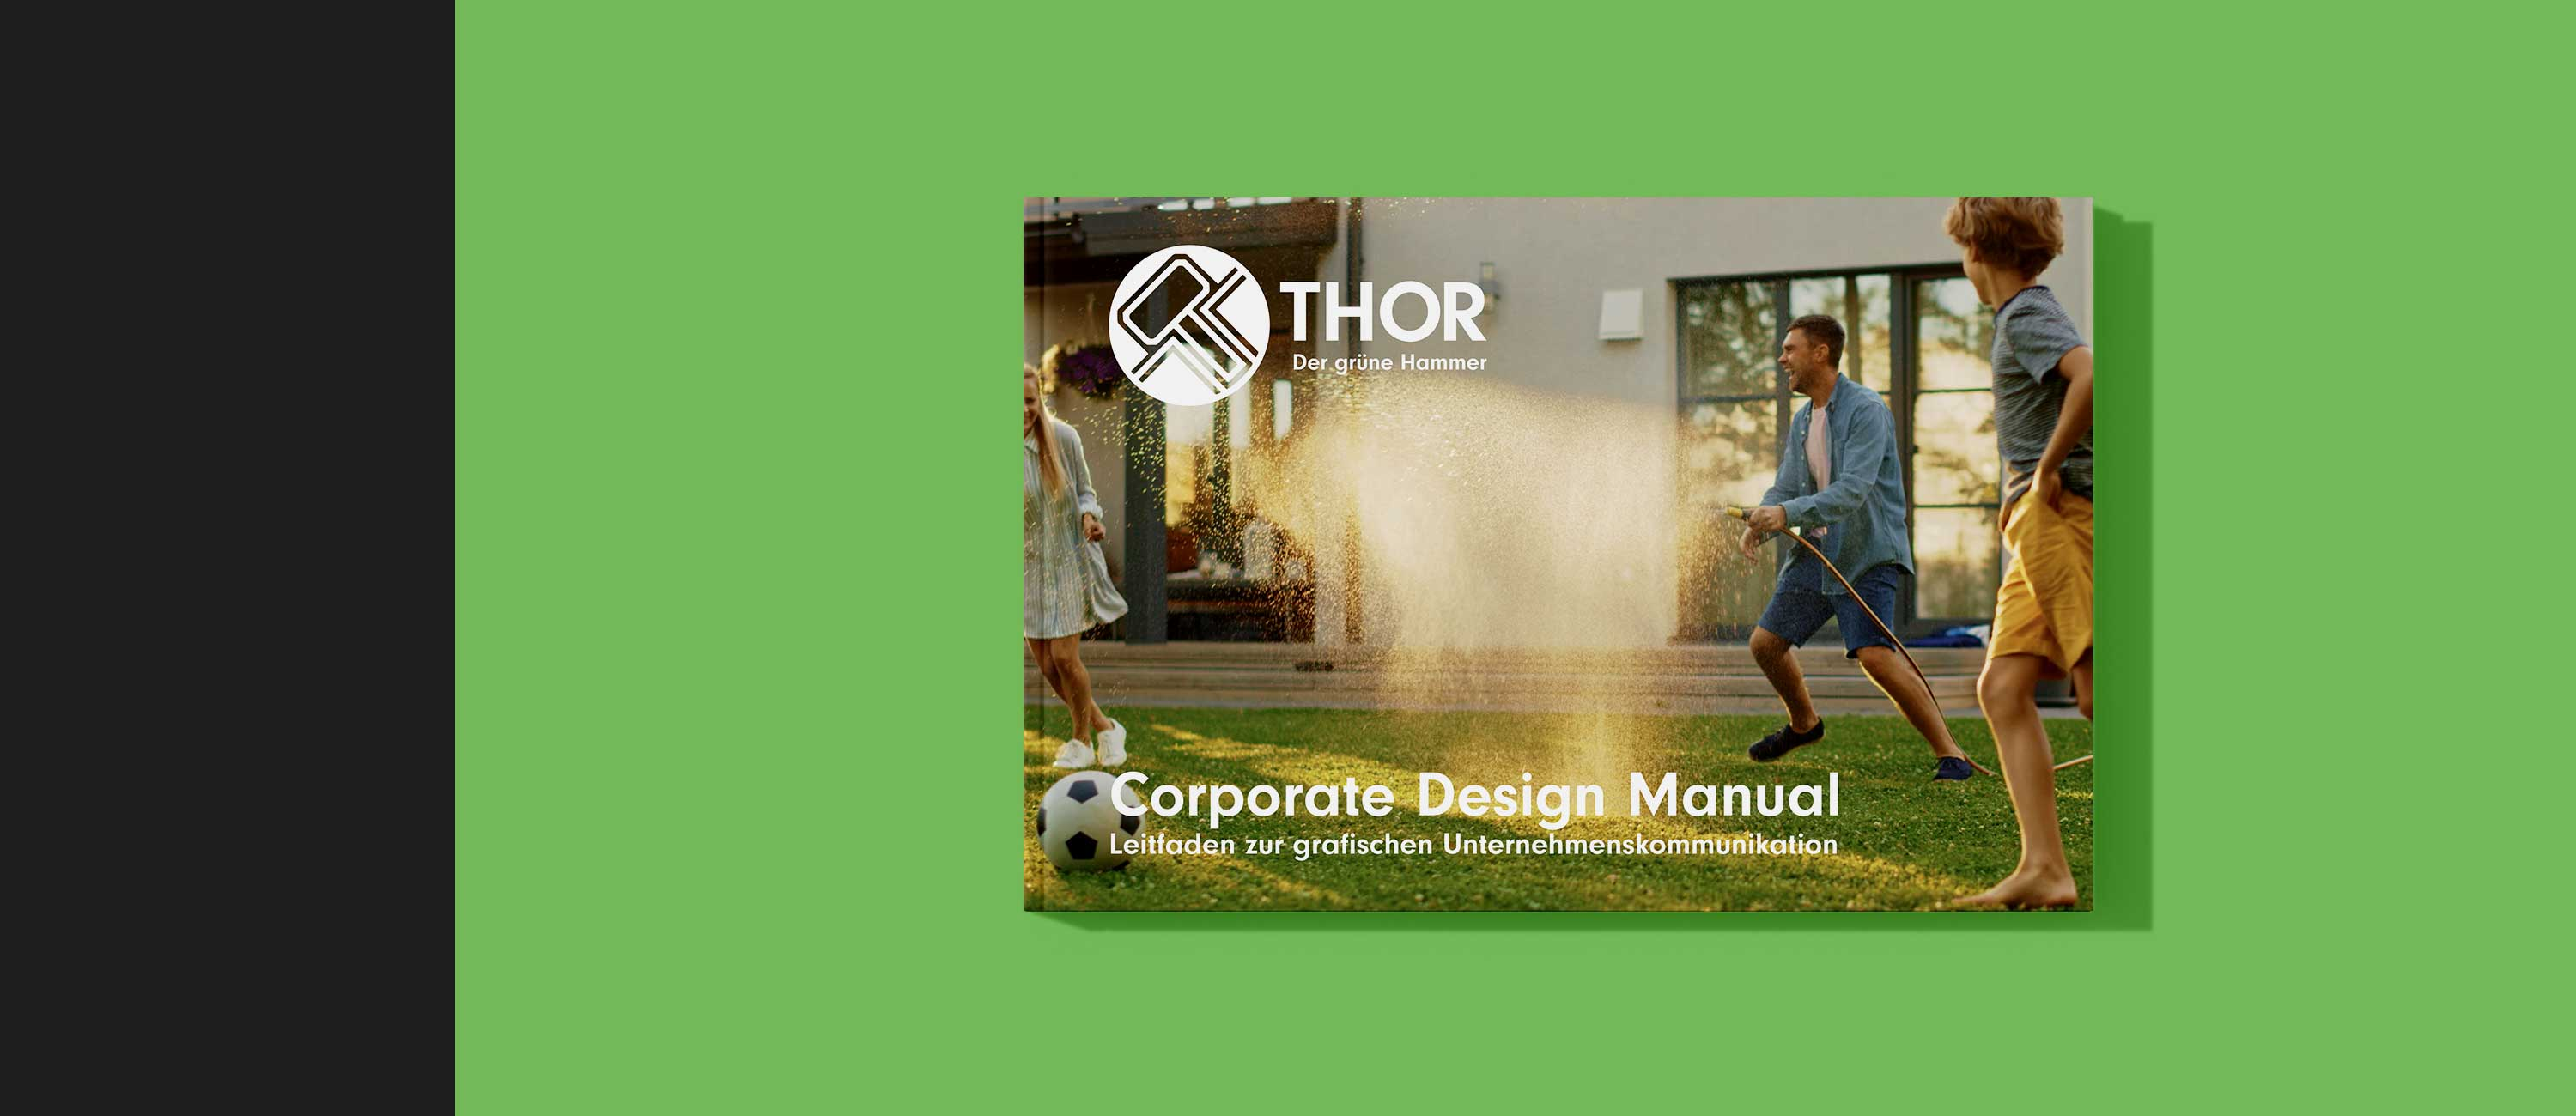 kreativbox - Corporate Design - THOR GaLaBau